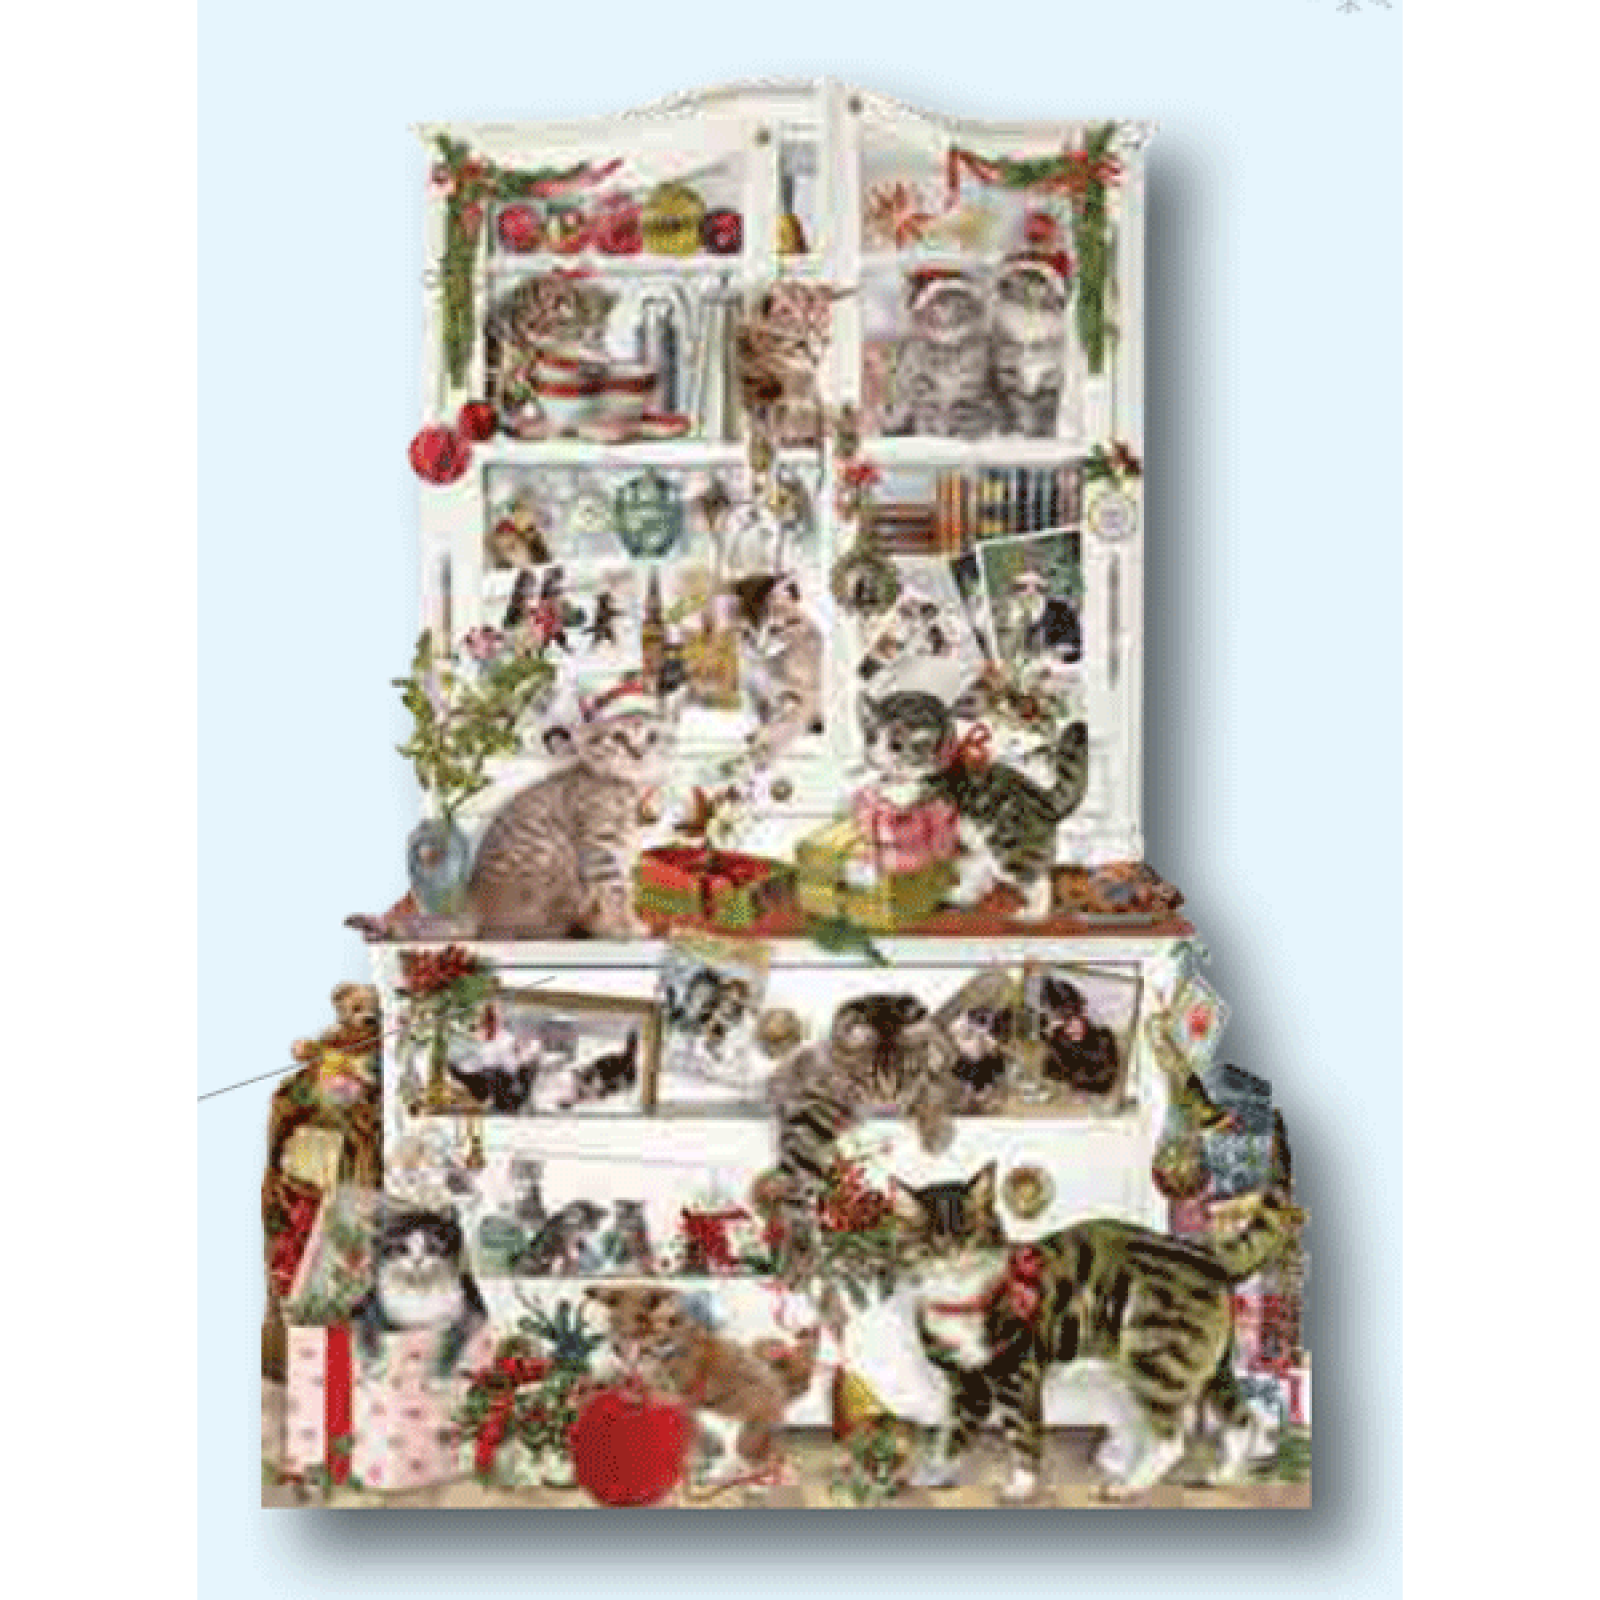 Mischievous Chrismas Cats Advent Calendar